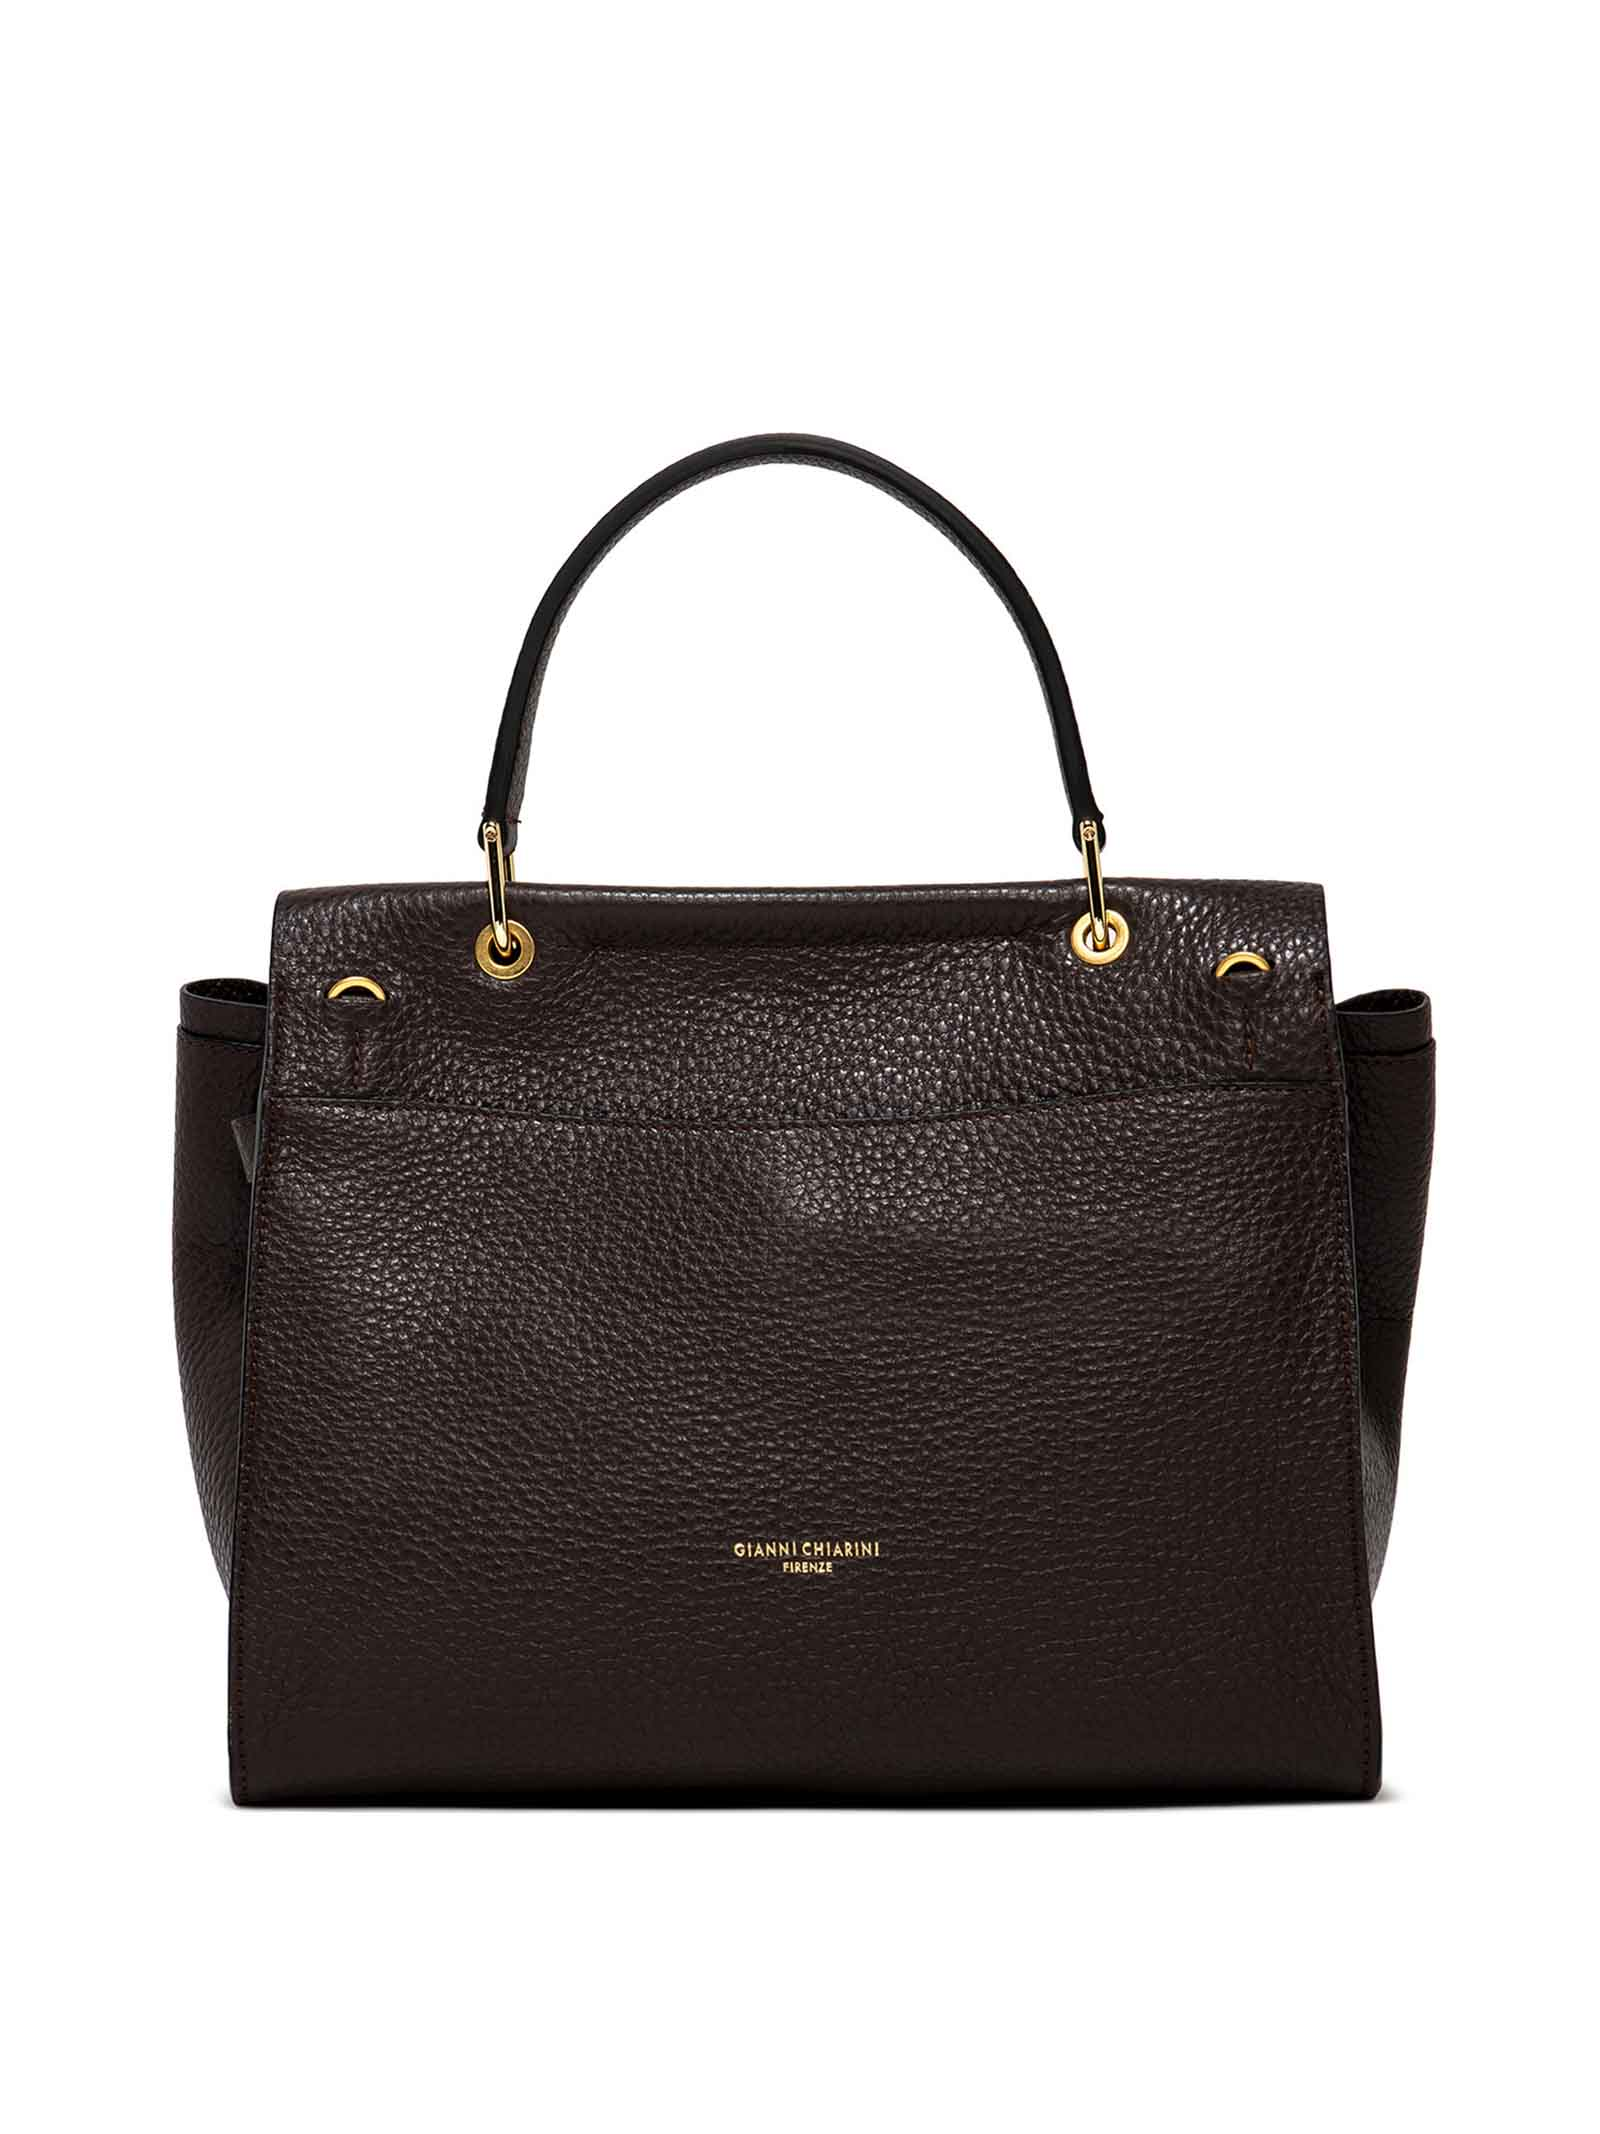 Women's Shoulder Bag Elettra in Dark Brown Grained Leather with Adjustable and Detachable Fabric Shoulder Strap Gianni Chiarini   Bags and backpacks   BS90029017